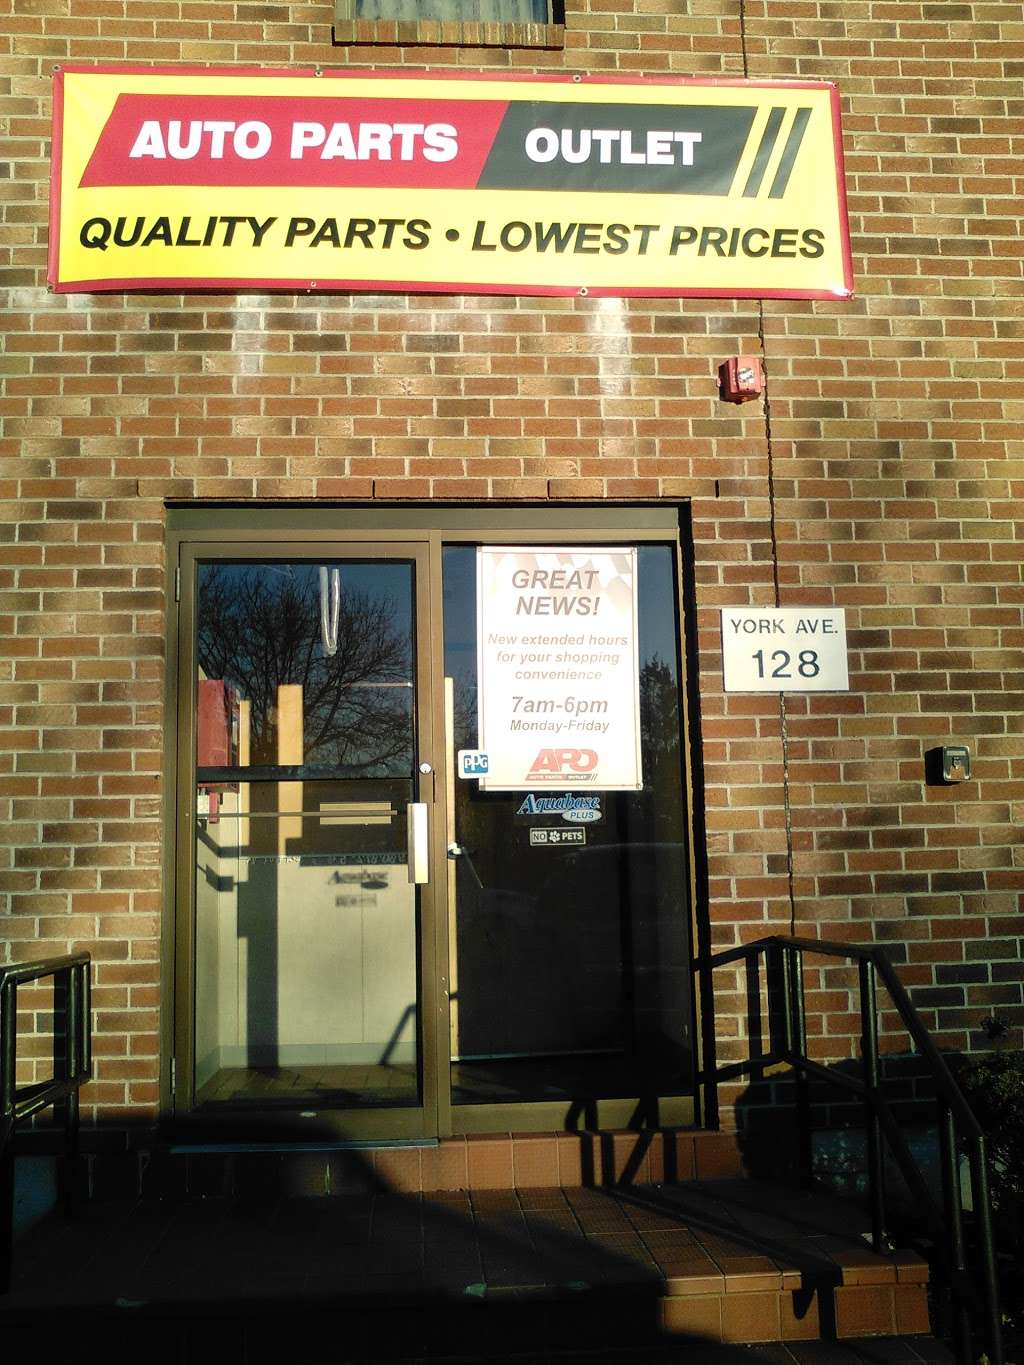 Auto Parts Outlet - car repair  | Photo 3 of 10 | Address: 128 York Ave, Randolph, MA 02368, USA | Phone: (800) 772-5558